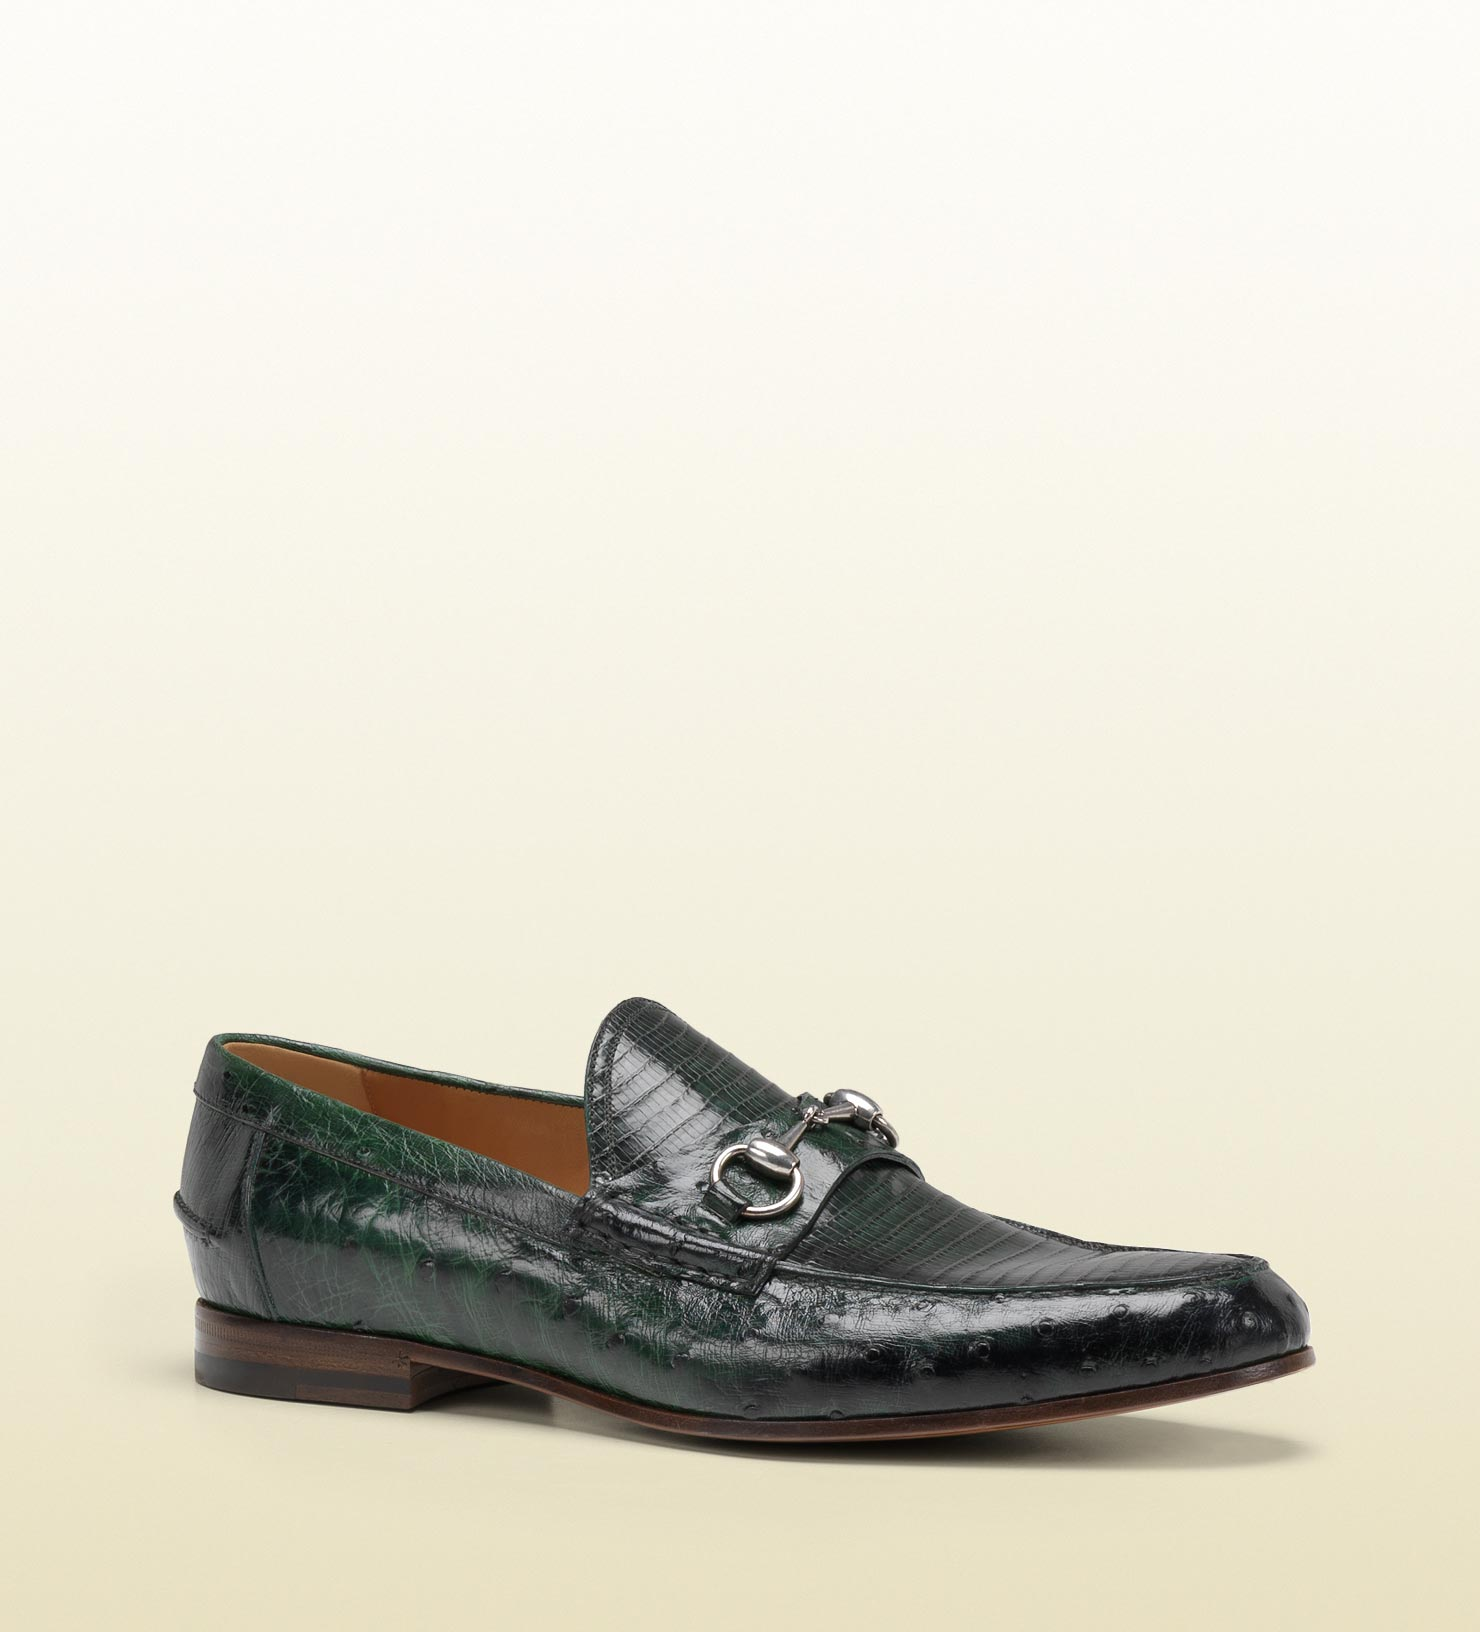 Gucci Ostrich Mens Shoes